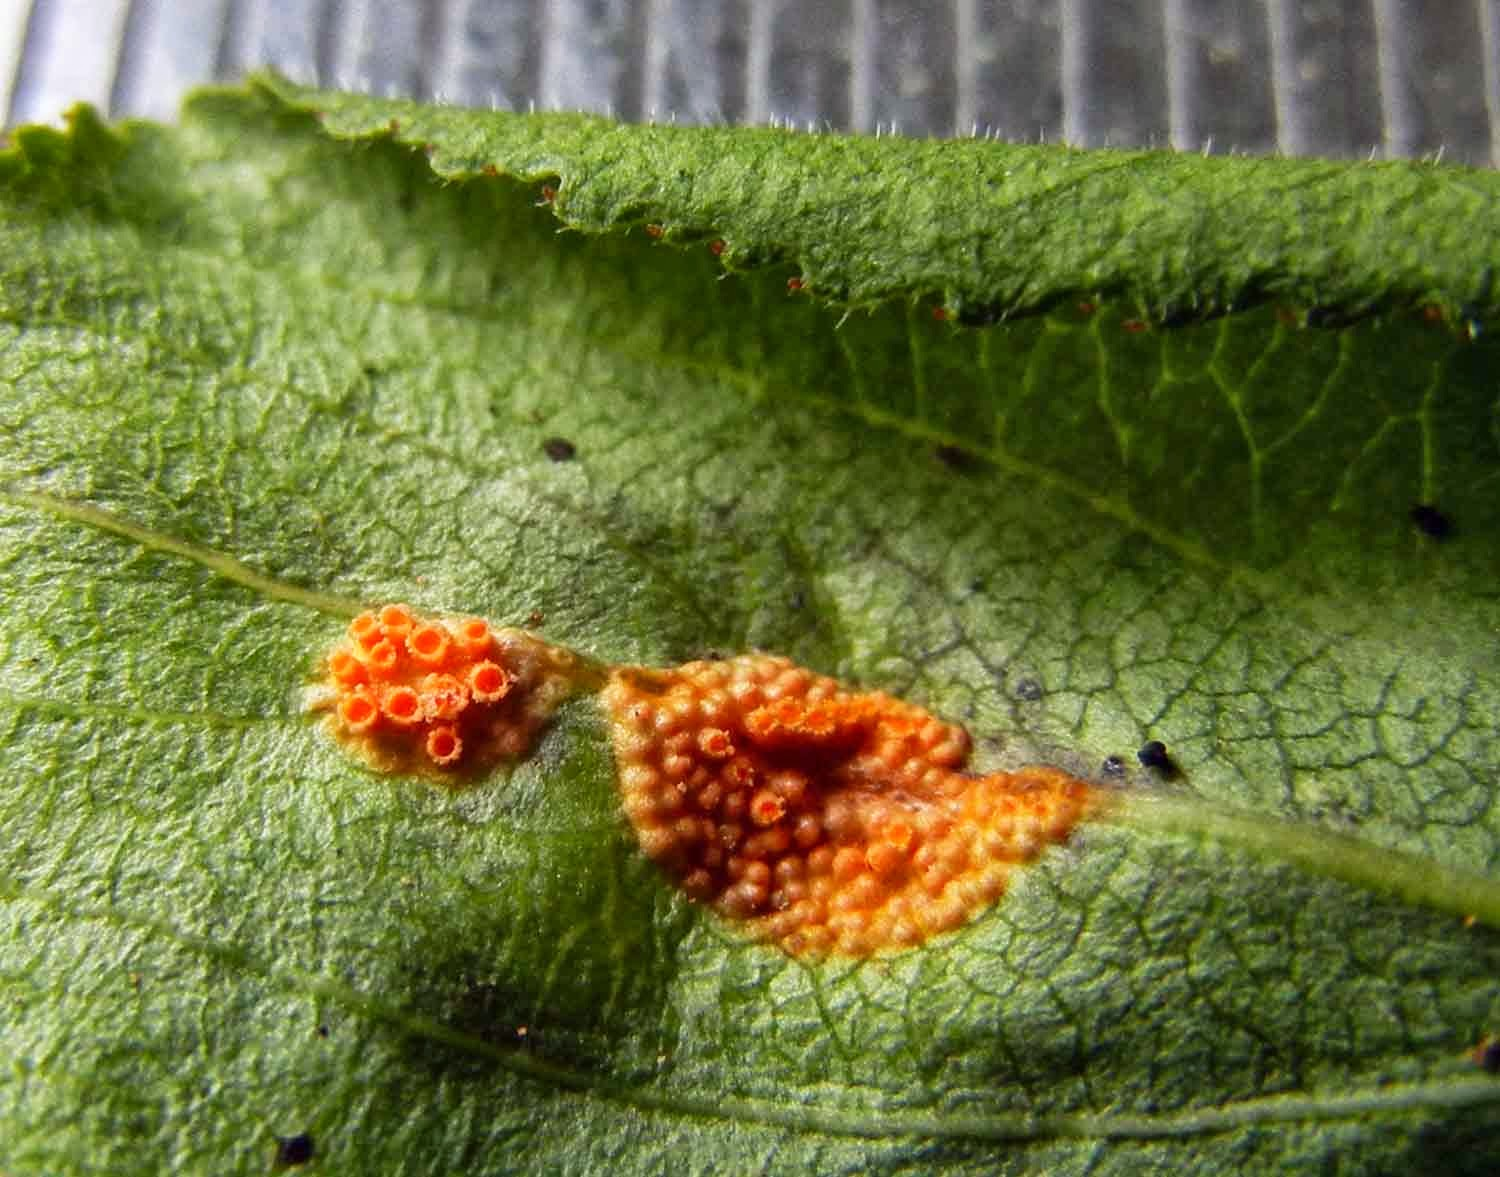 close-up of Puccinia coronata rust fungus on buckthorn